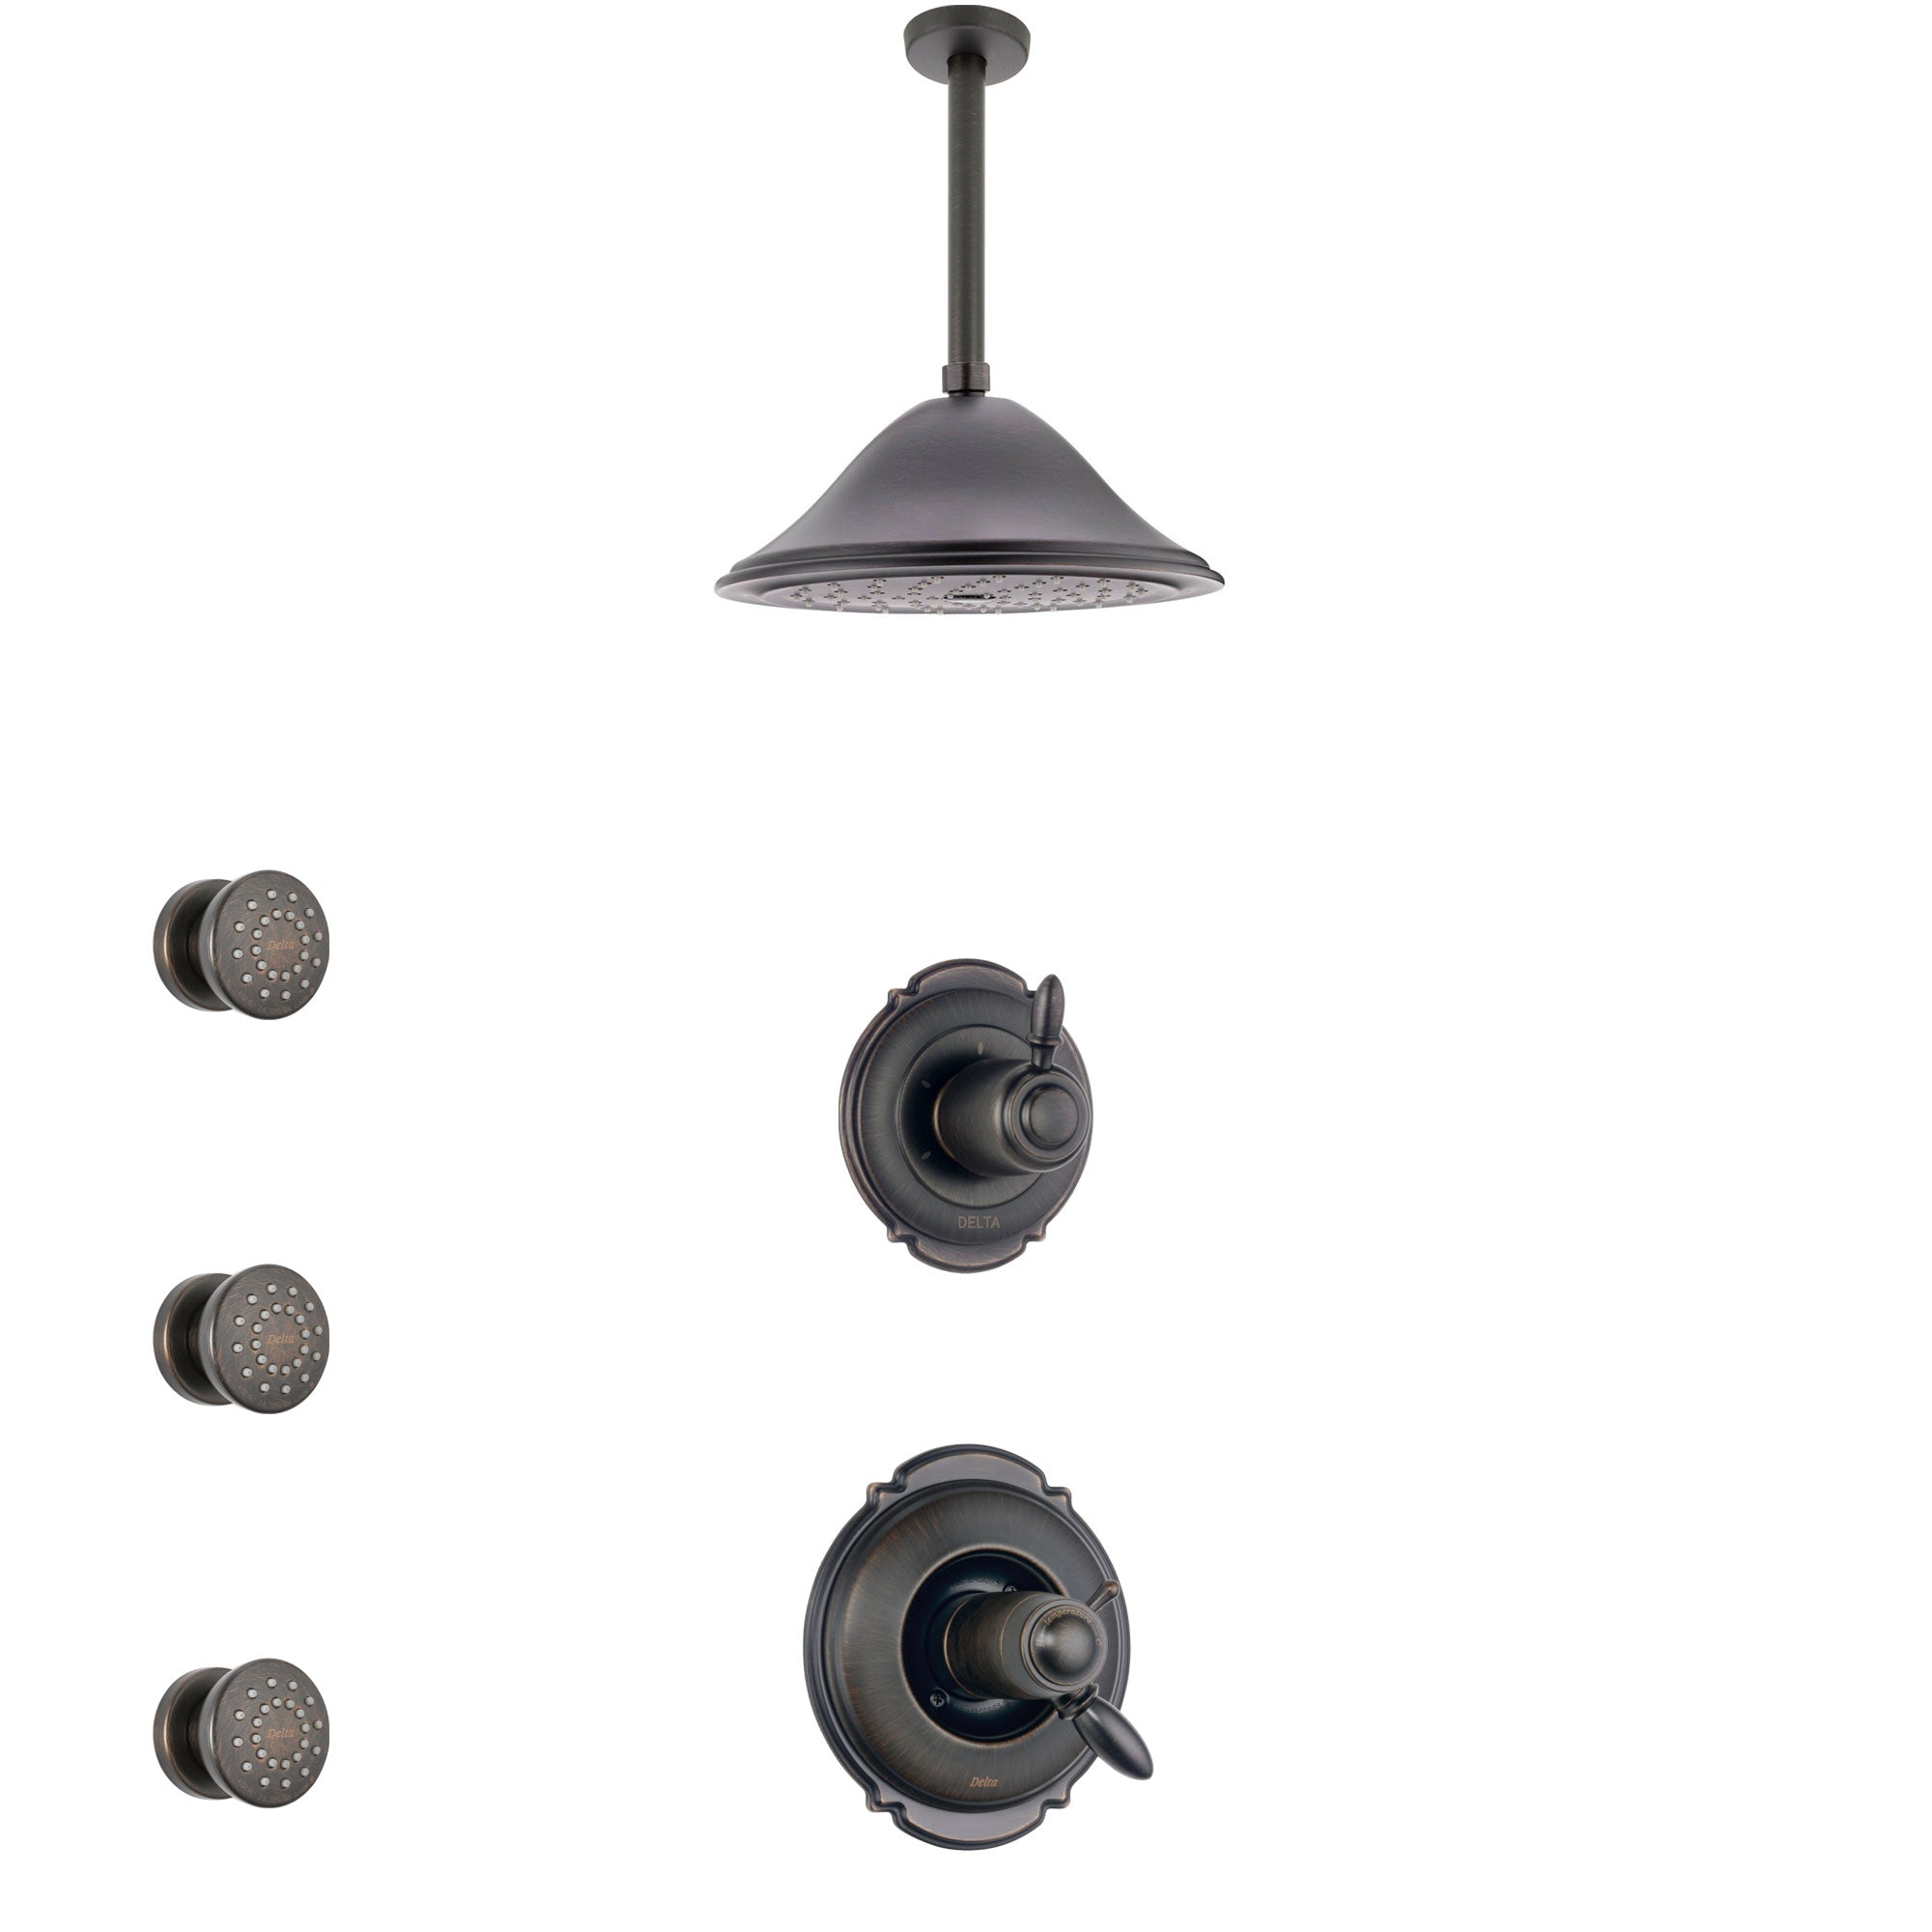 Delta Victorian Venetian Bronze Shower System with Dual Thermostatic Control Handle, Diverter, Ceiling Mount Showerhead, and 3 Body Sprays SS17T551RB4